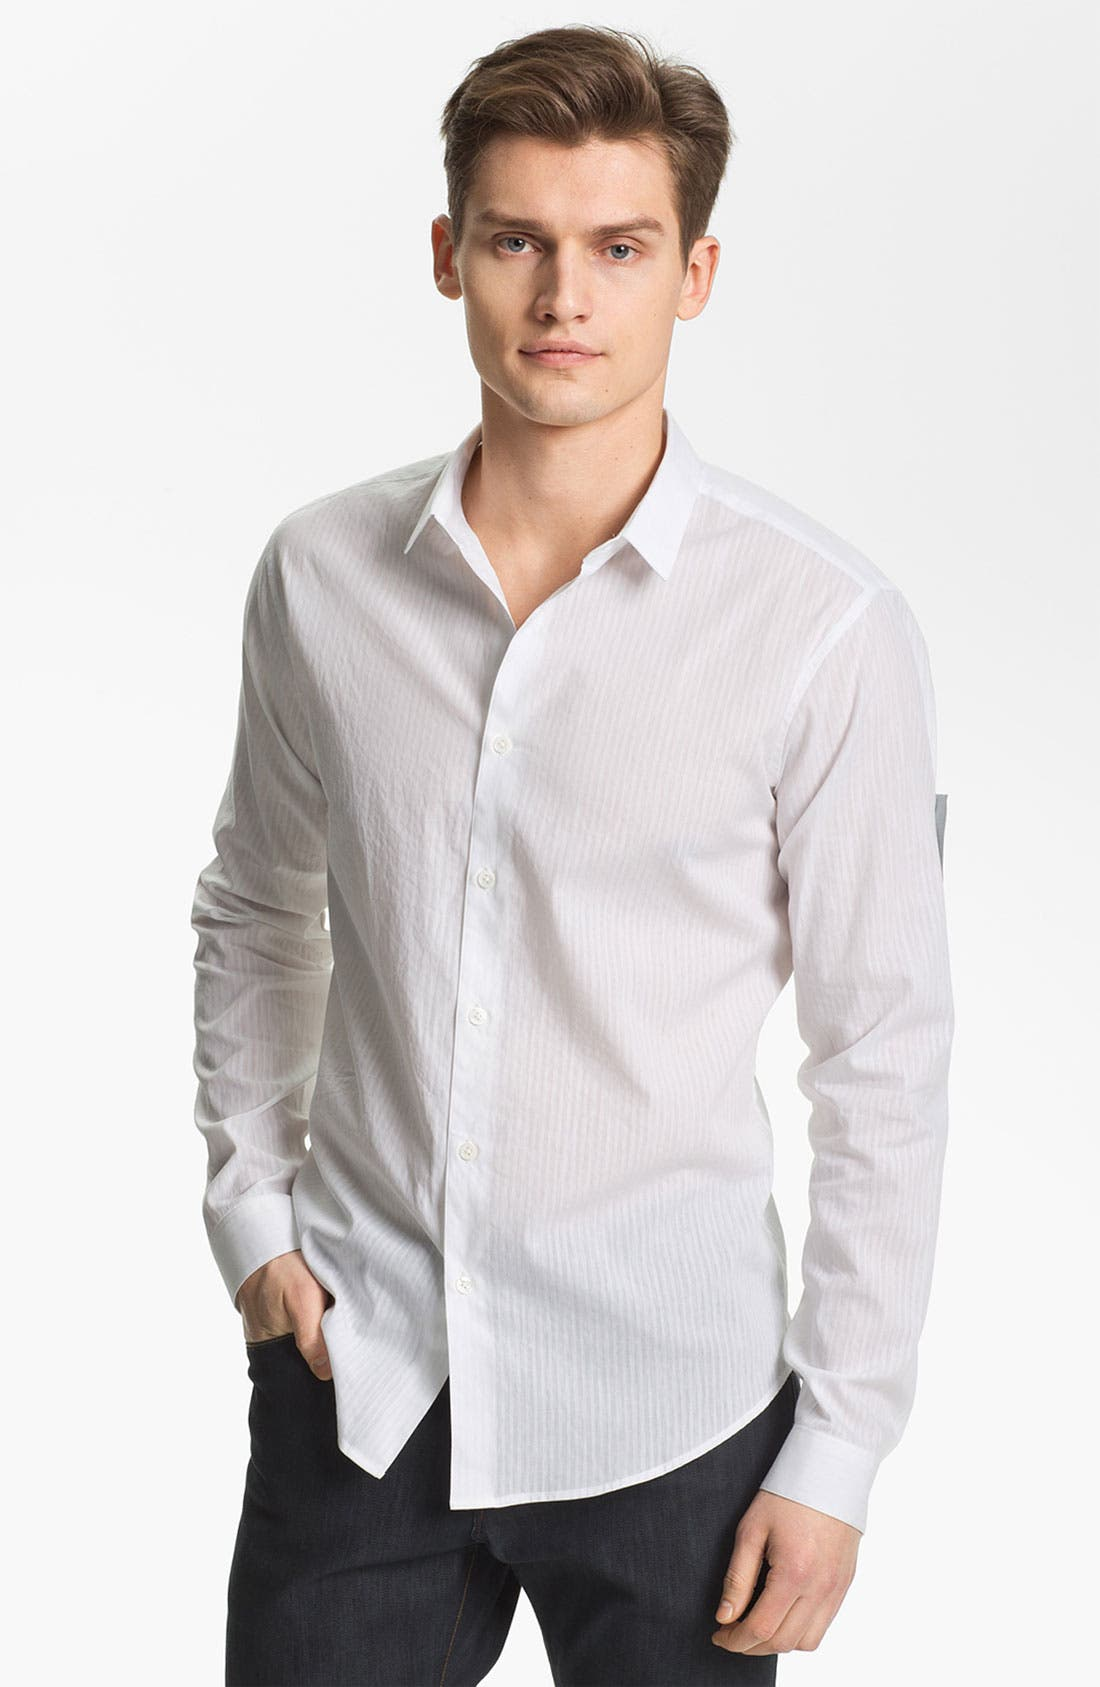 Alternate Image 1 Selected - Theory 'Stephan S. Aldine' Trim Fit Cotton & Linen Sport Shirt